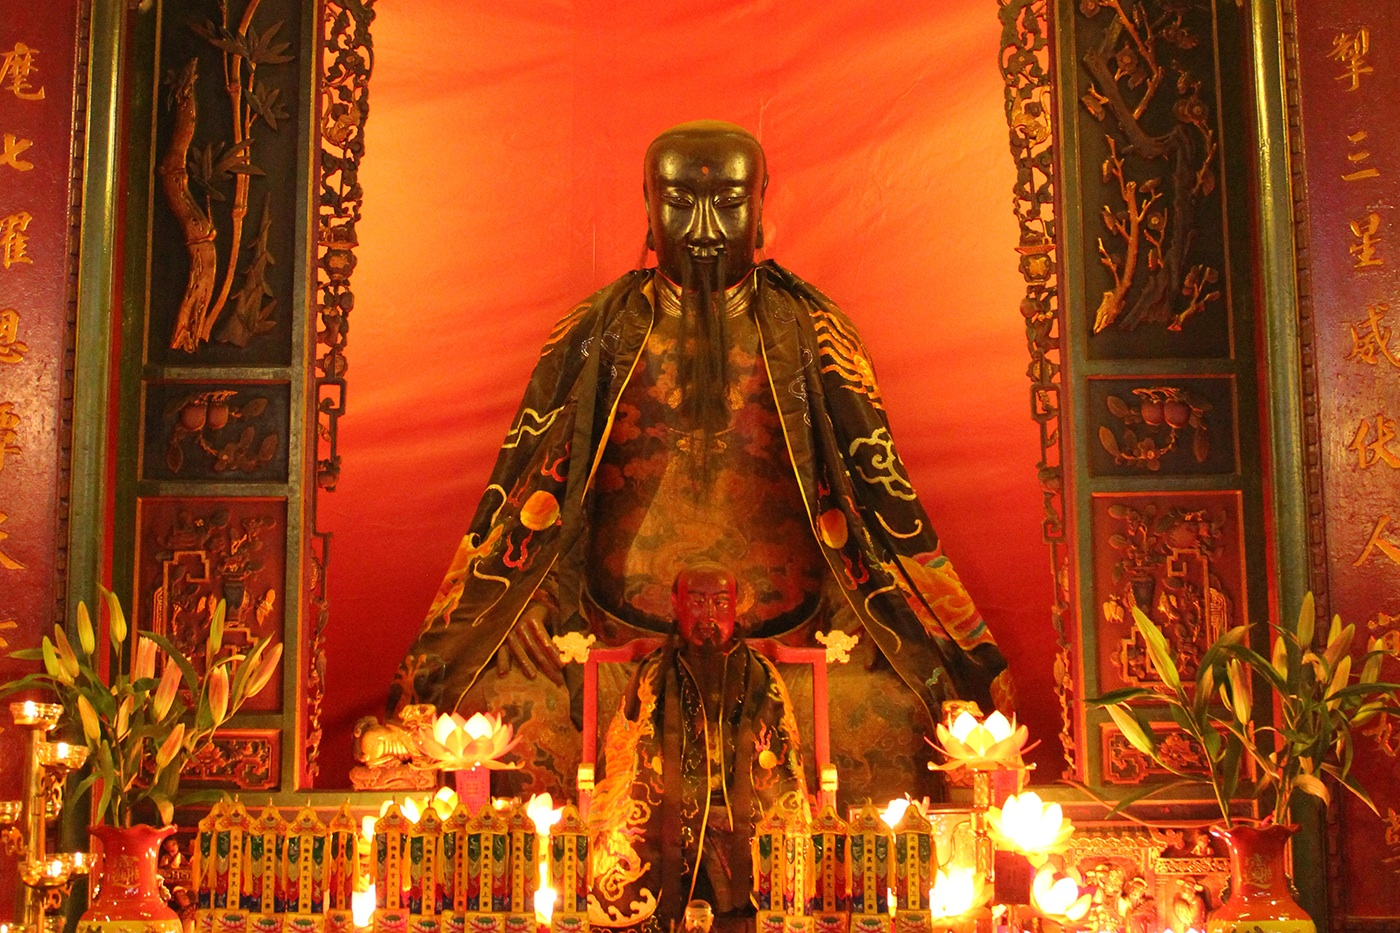 Pak Tai Mysterious Black God Of The North